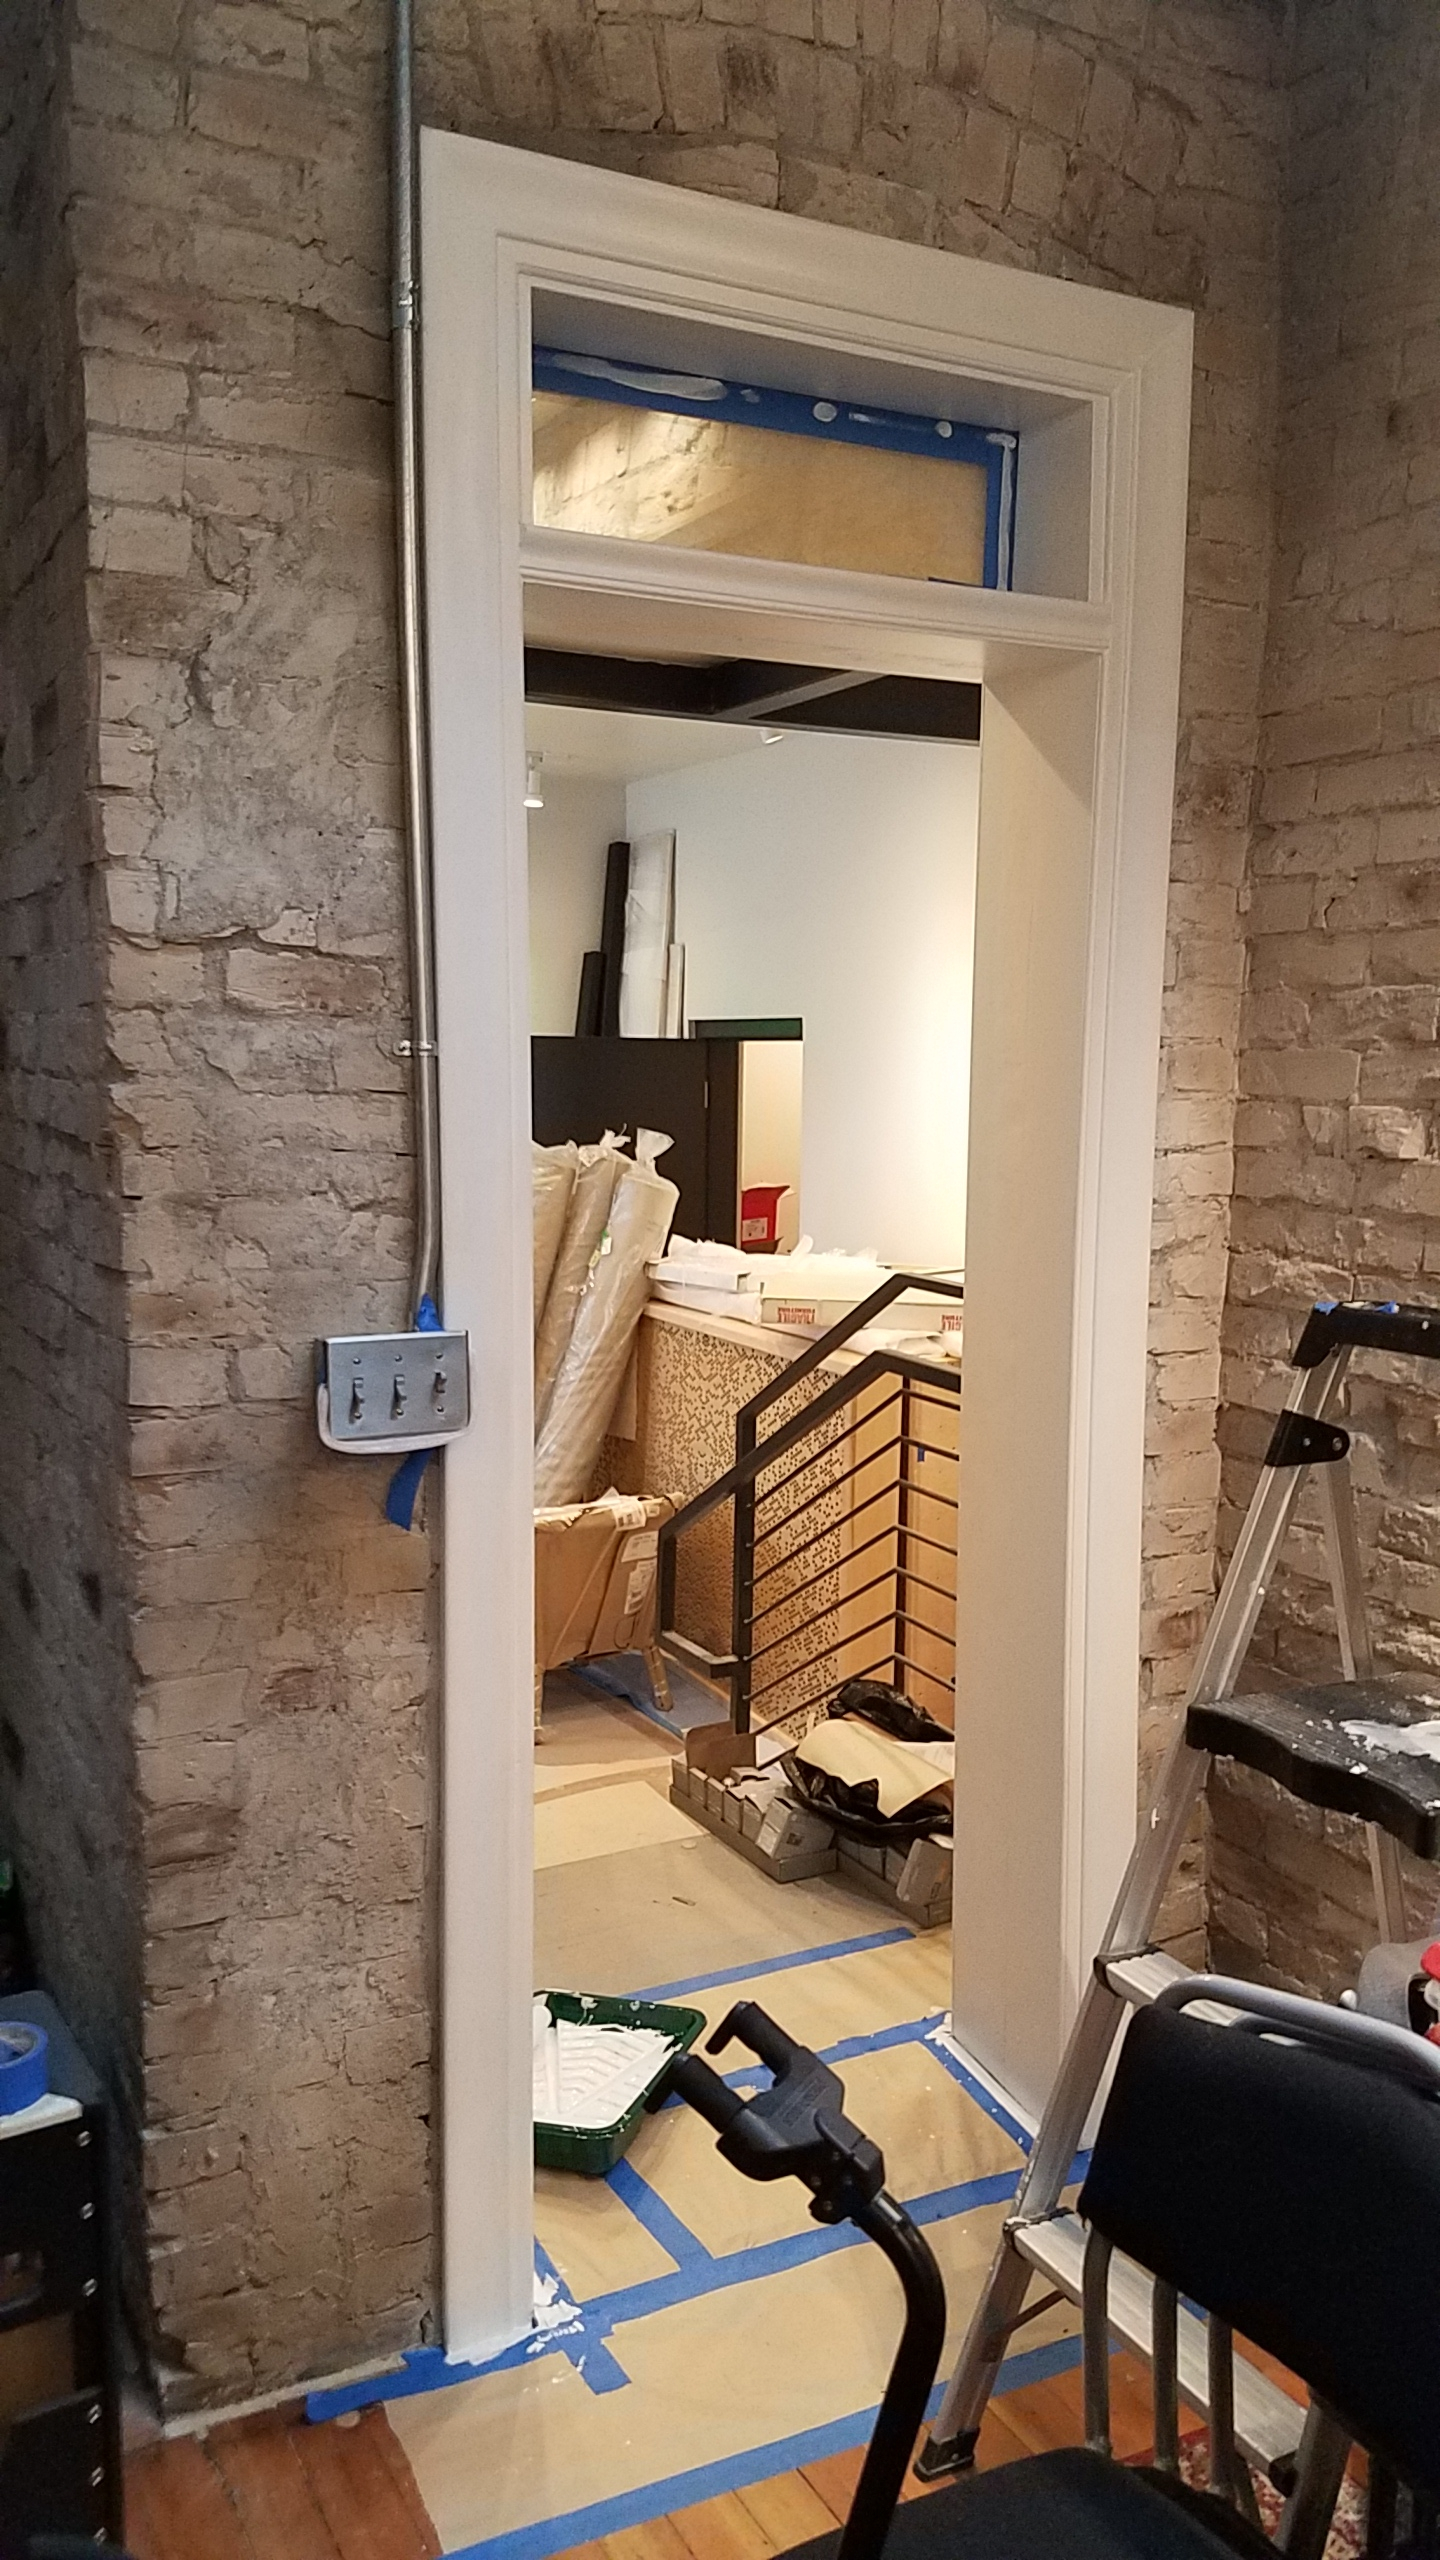 The back door of the house / passage between the lounge and the lobby is nearly finished.